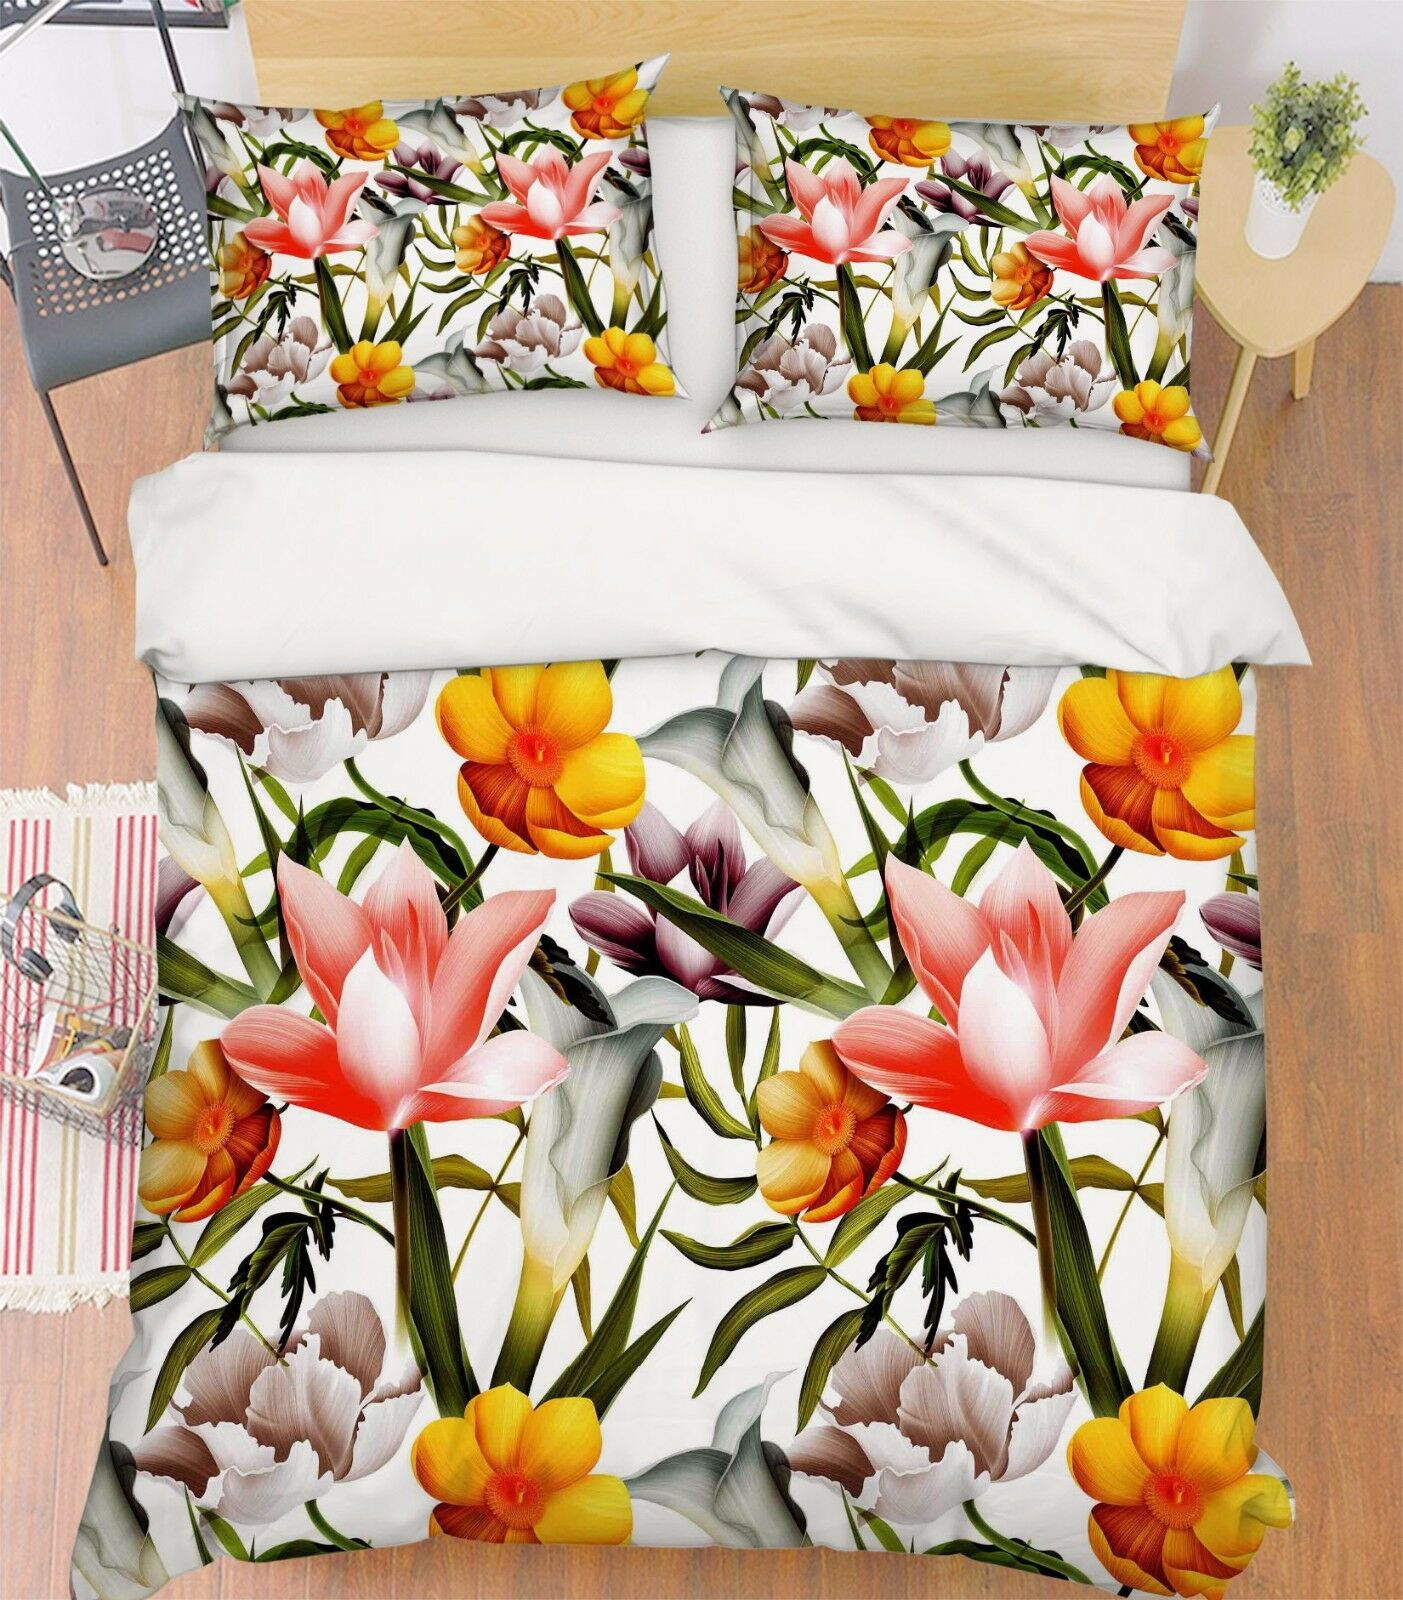 3D Squid Paint 771 Bed Pillowcases Quilt Duvet Cover Set Single Queen UK Carly